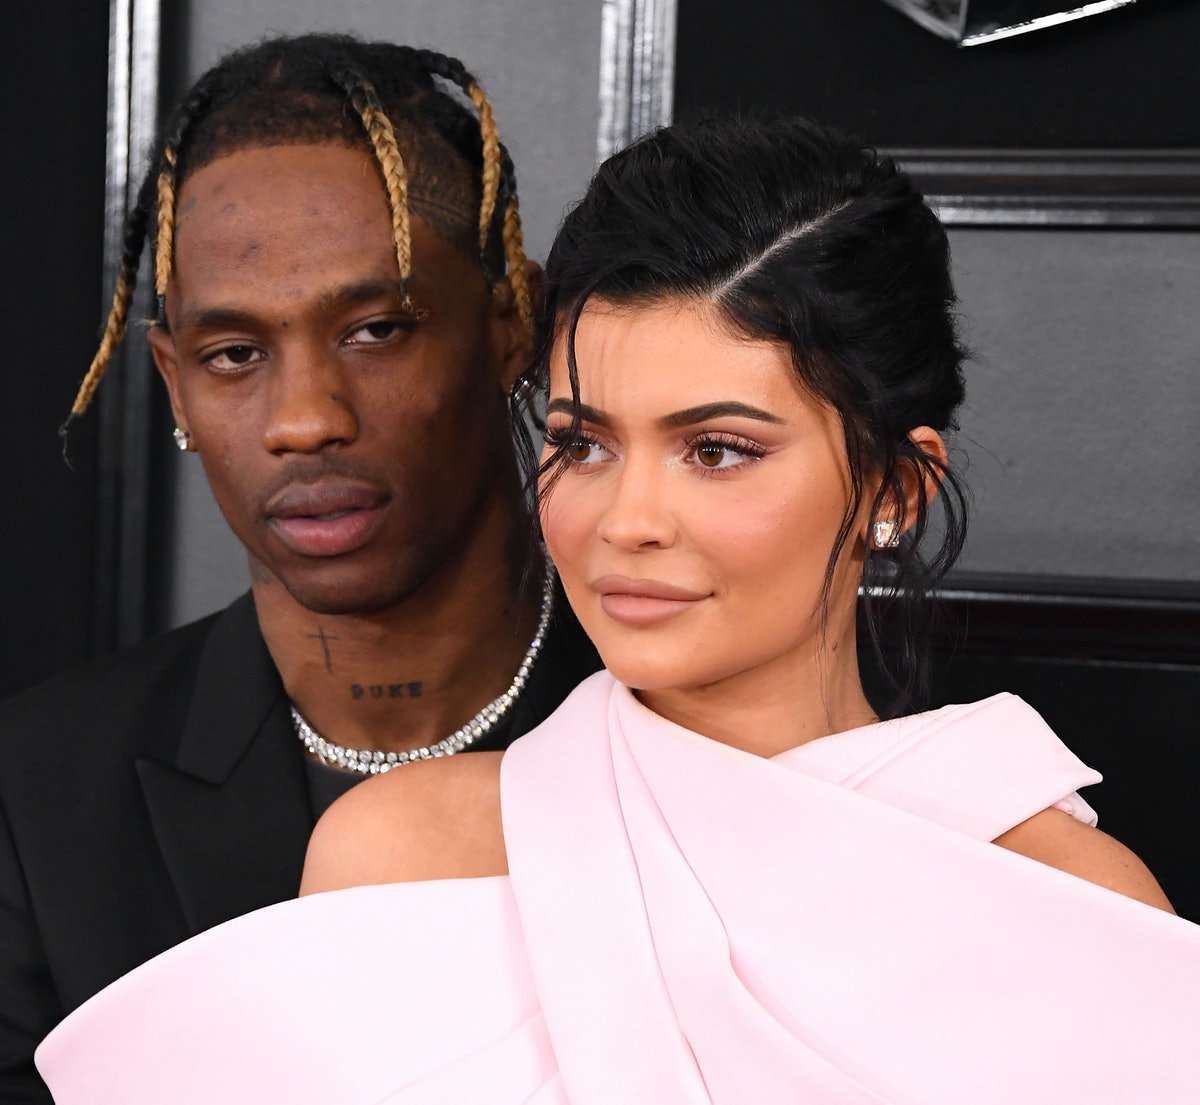 Kylie Jenner Is Promoting Travis Scott's New Music